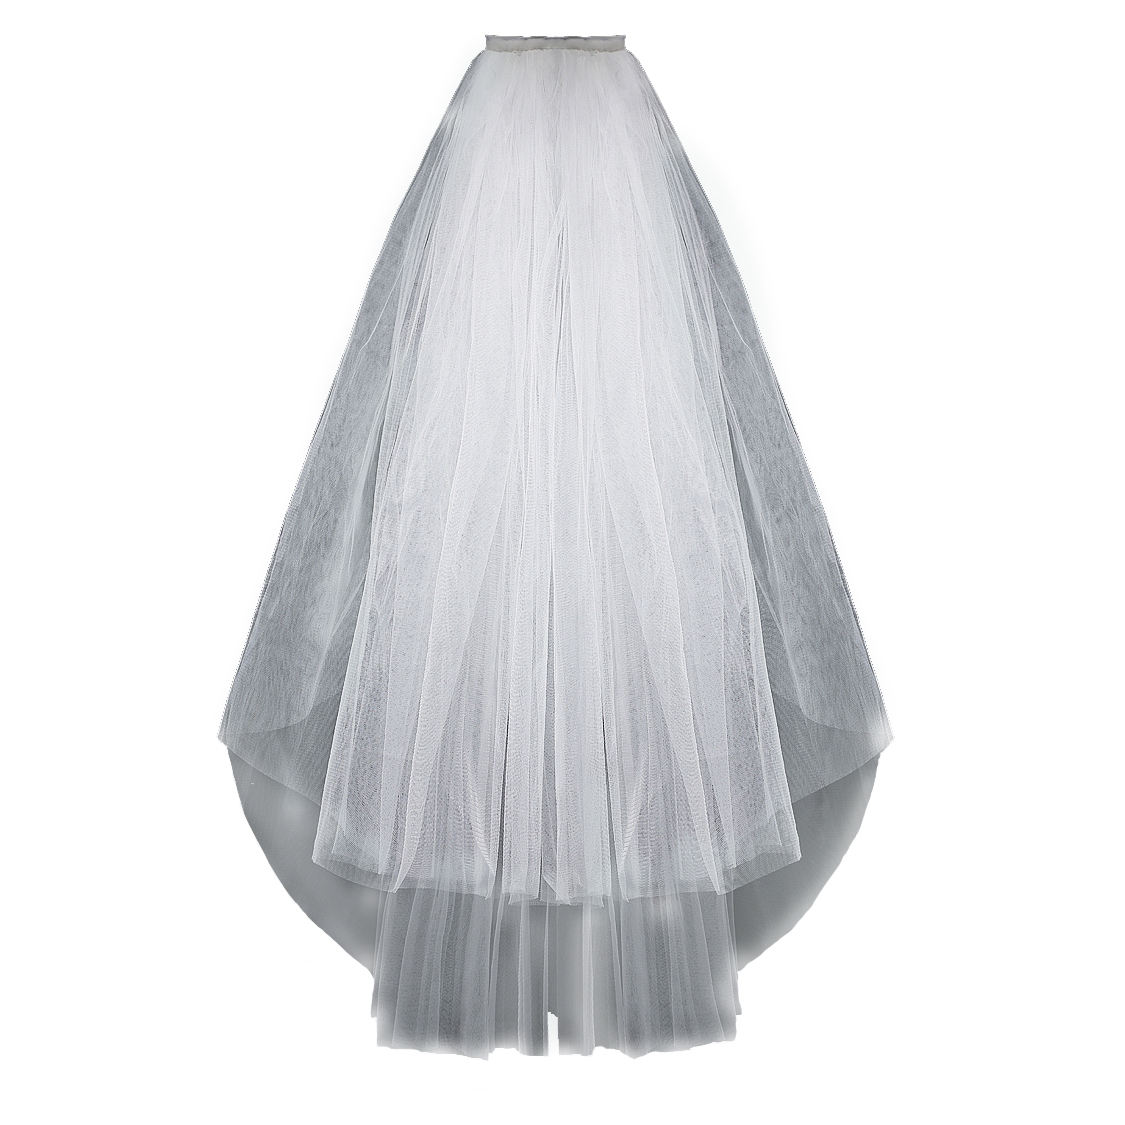 Classic White Birdcage Veil Face Short Wedding Bridal fluffy romantic Veils with Comb